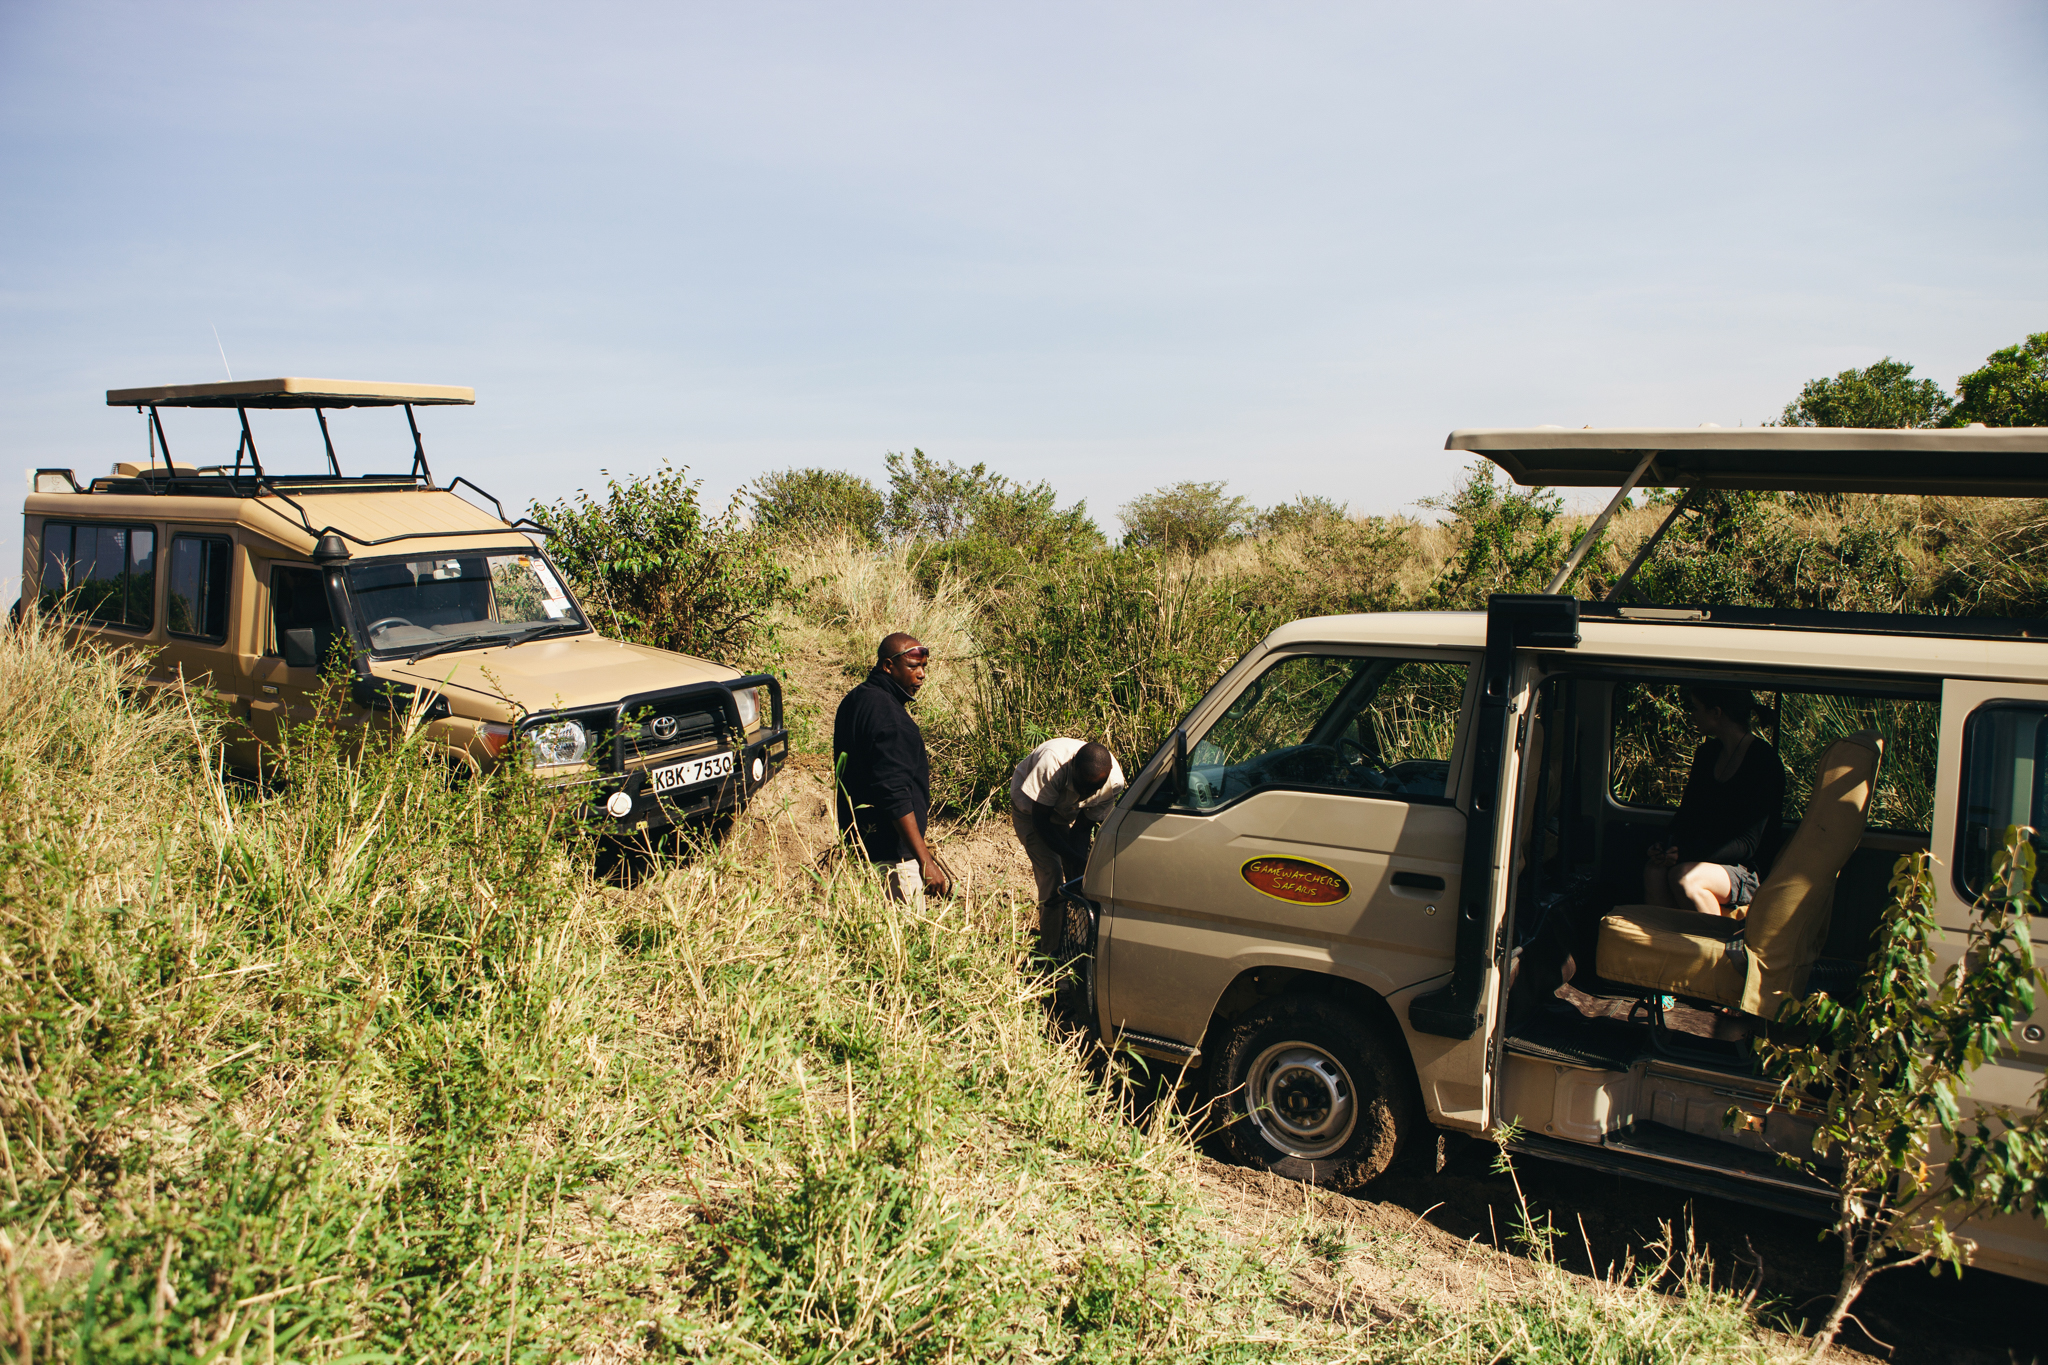 At one point we got ourselves trapped in a ditch! We got rescued but I have to admit I quite fancied a trek in the wild ;)